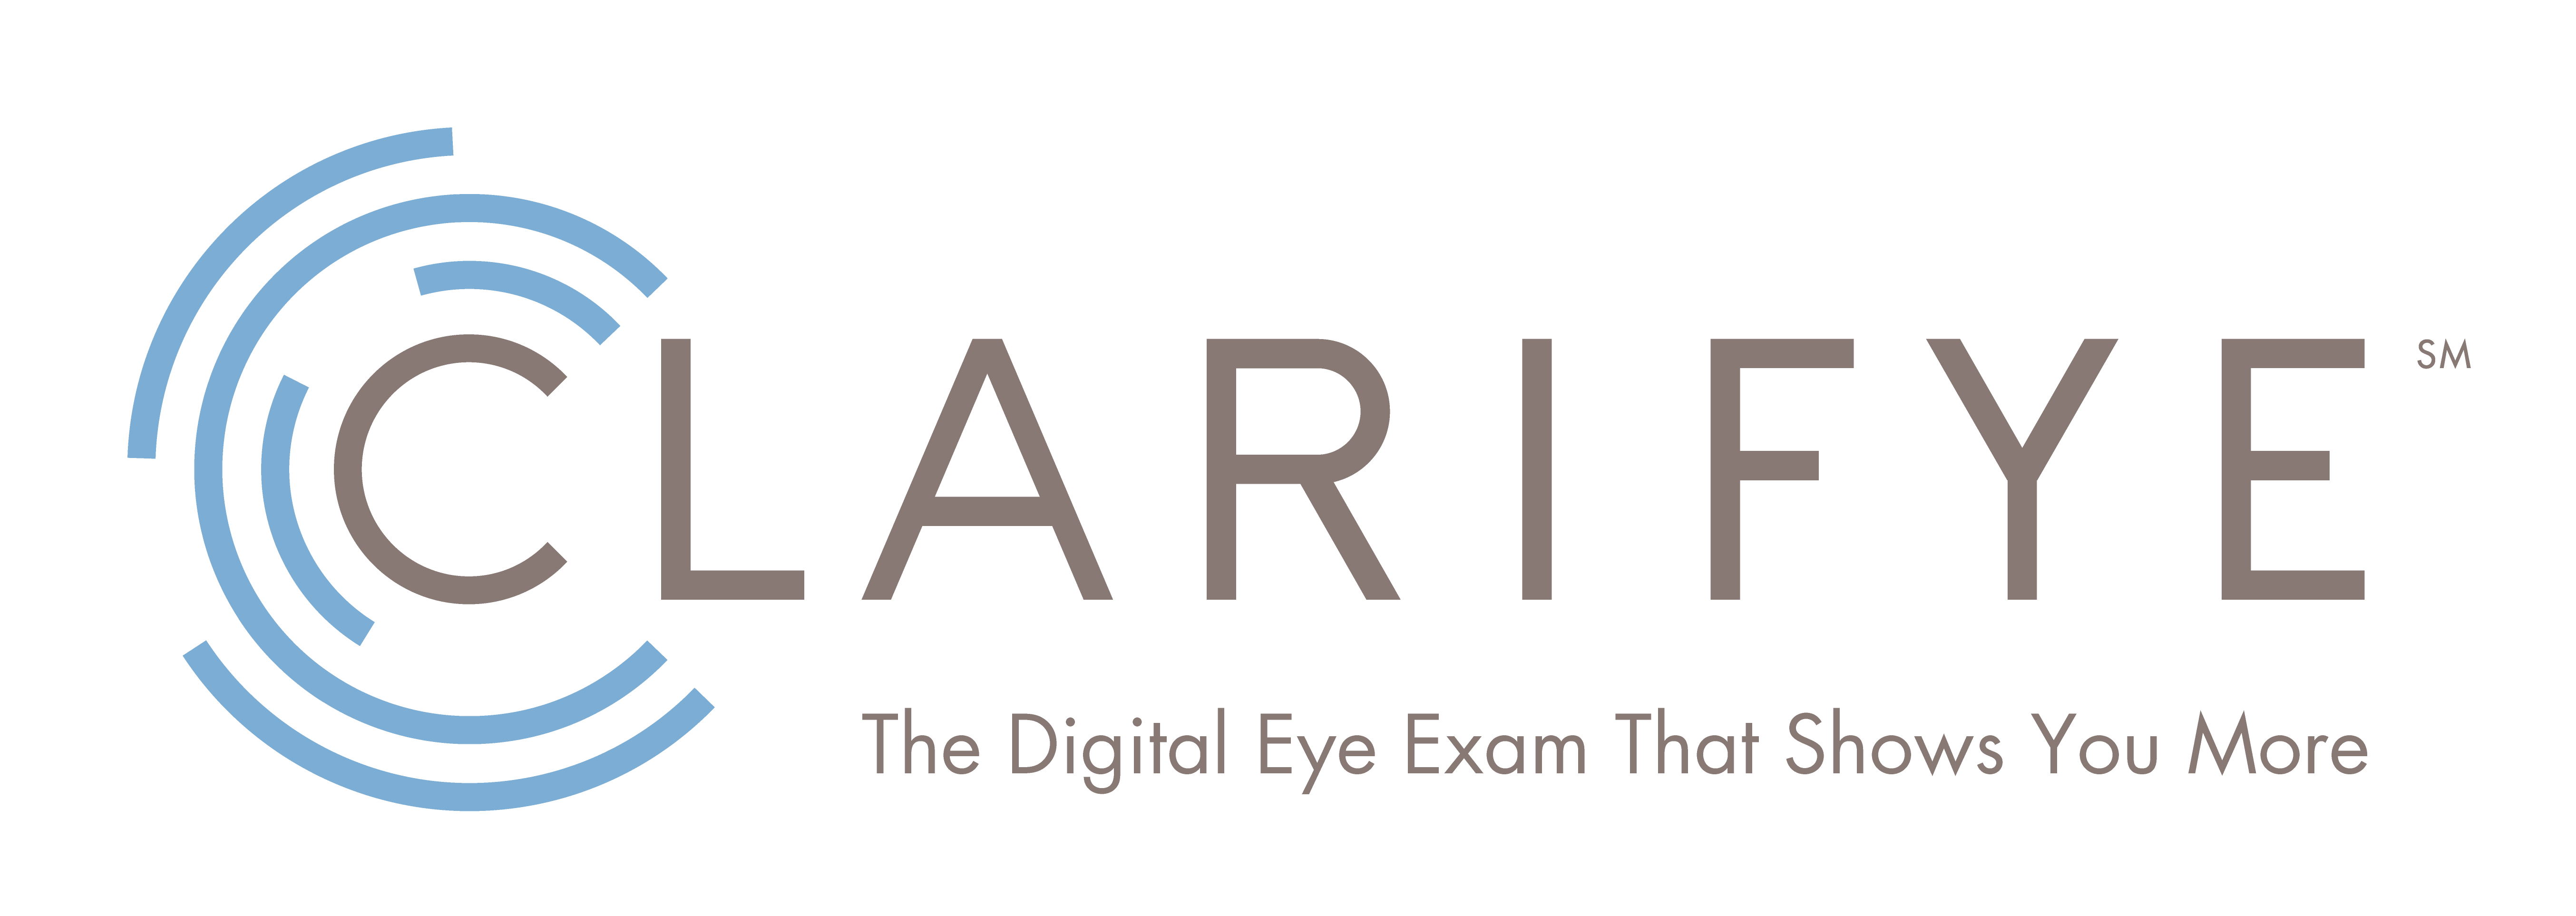 Clarifye Eye Exam, Scottsdale, AZ eye doctor